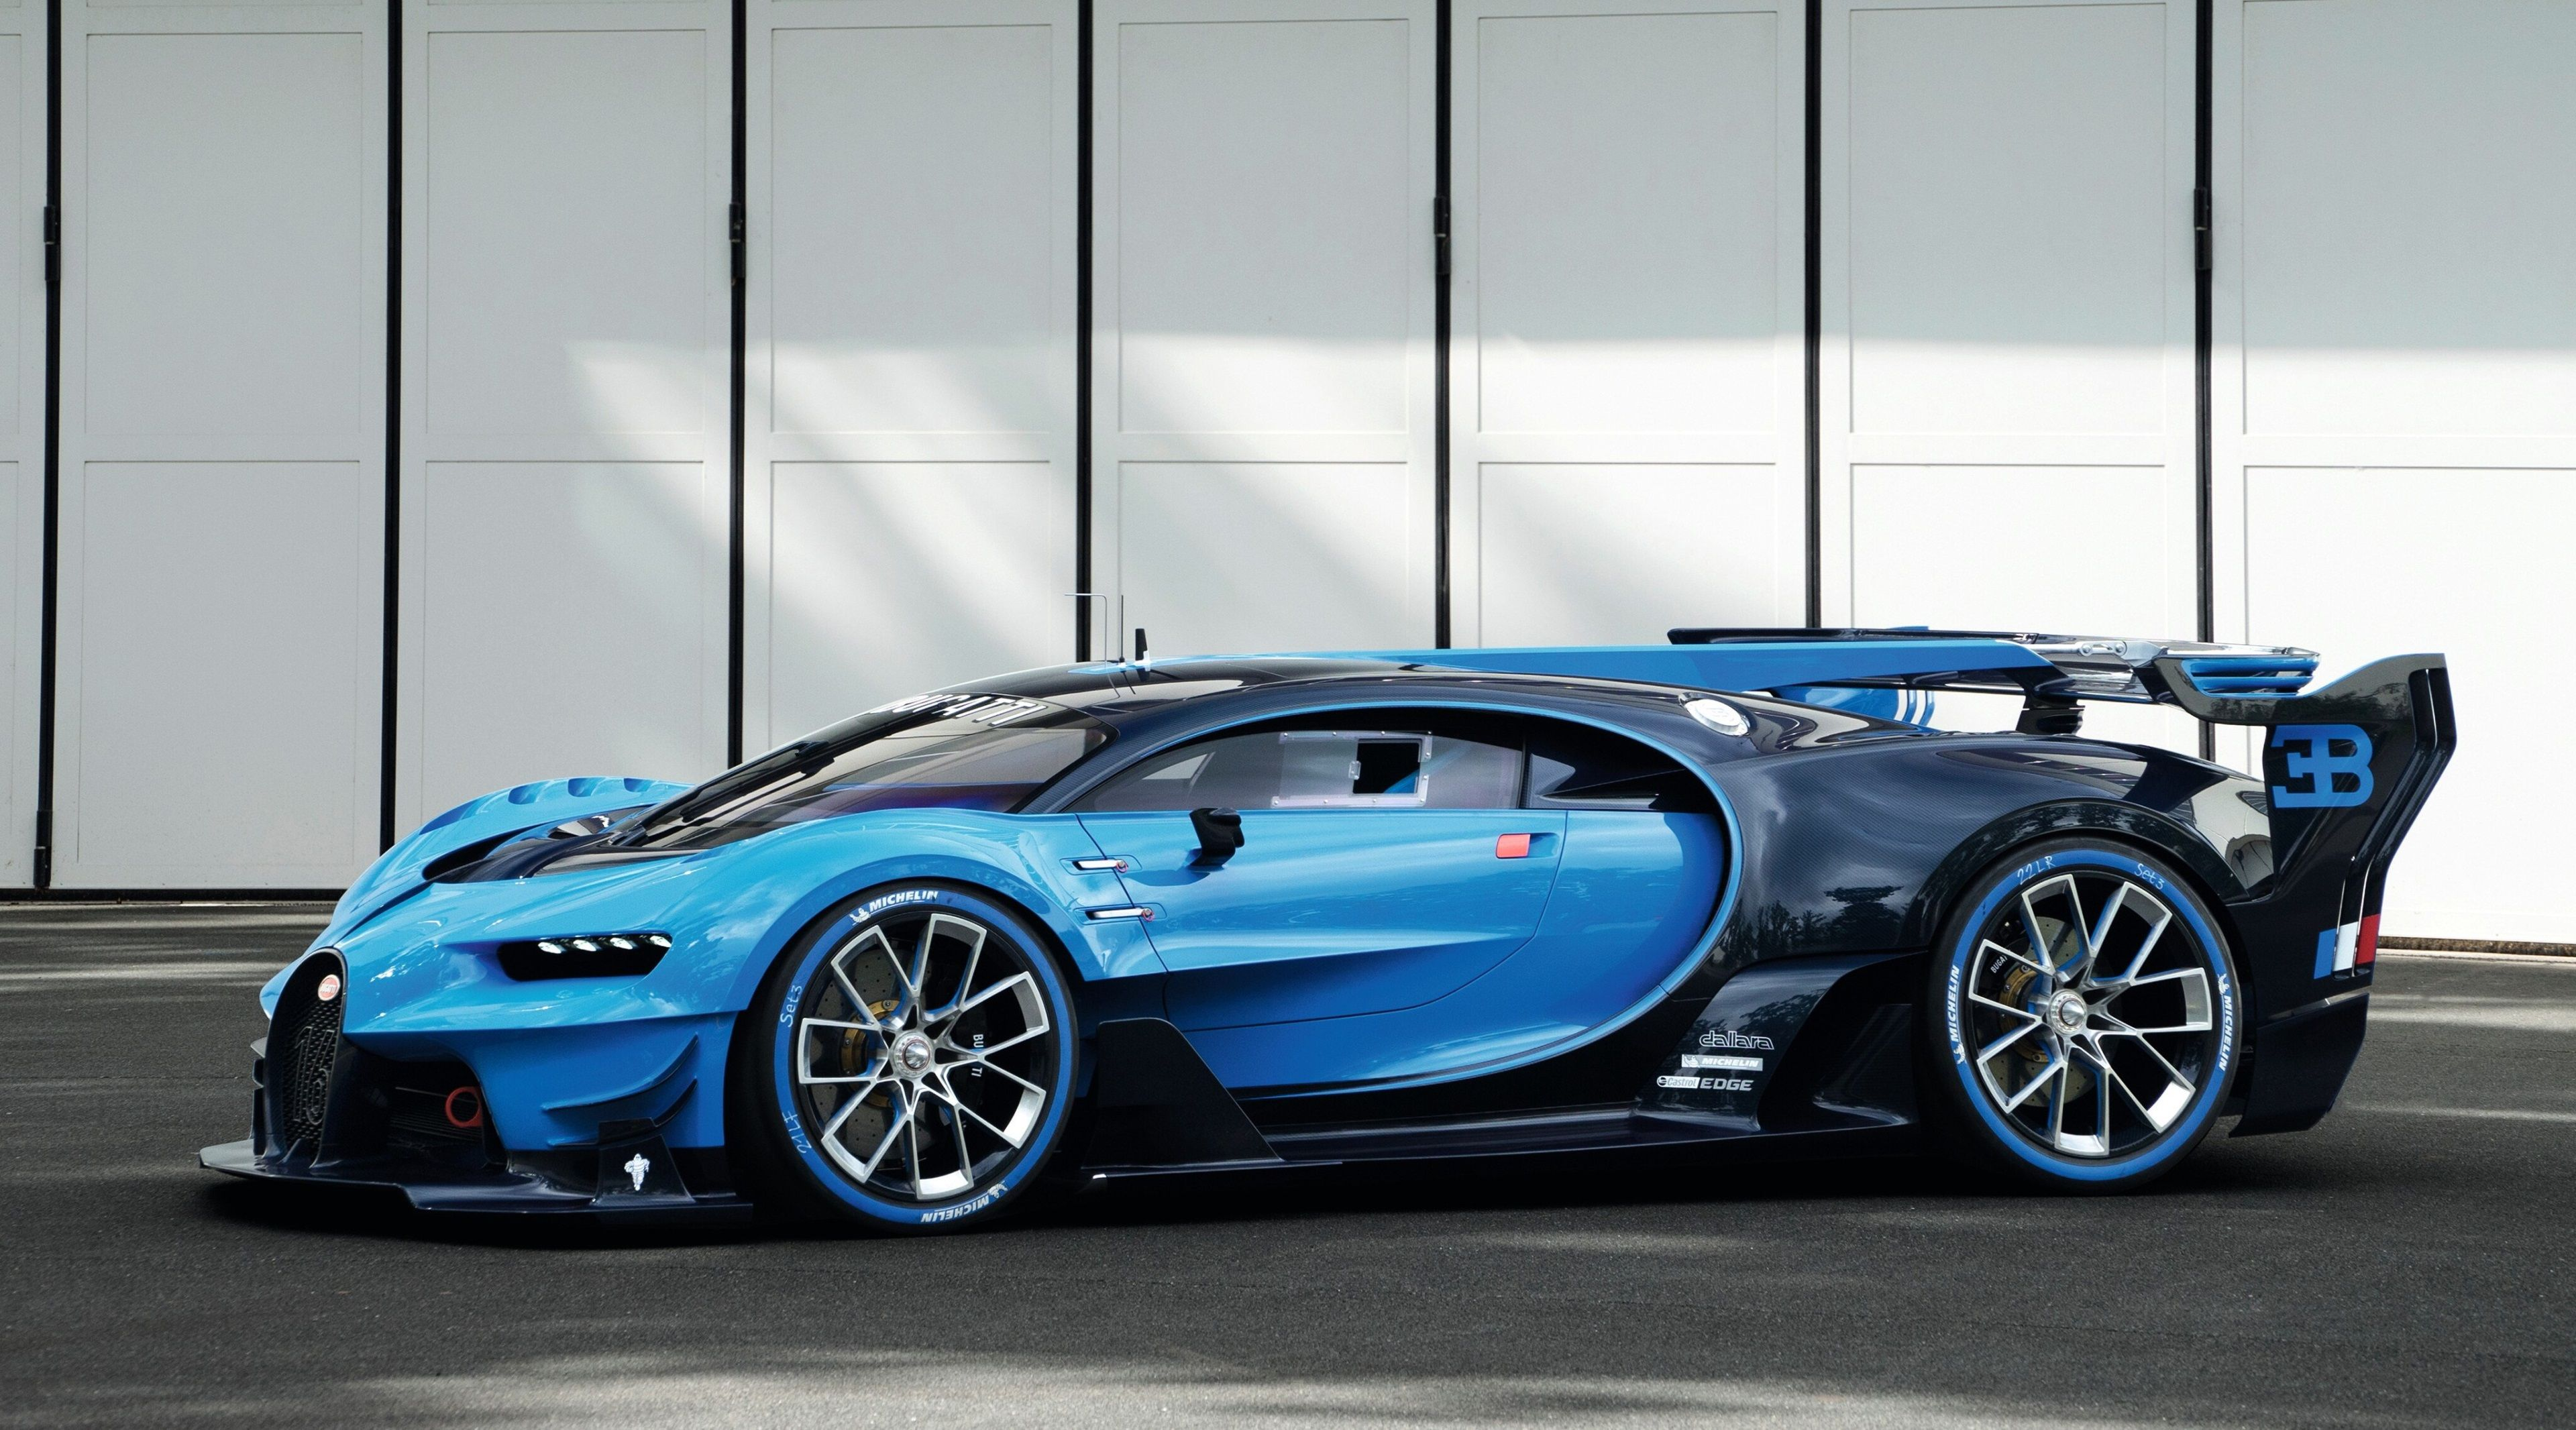 3840x2132 Bugatti Vision Gran Turismo 4k Hd Wallpaper High